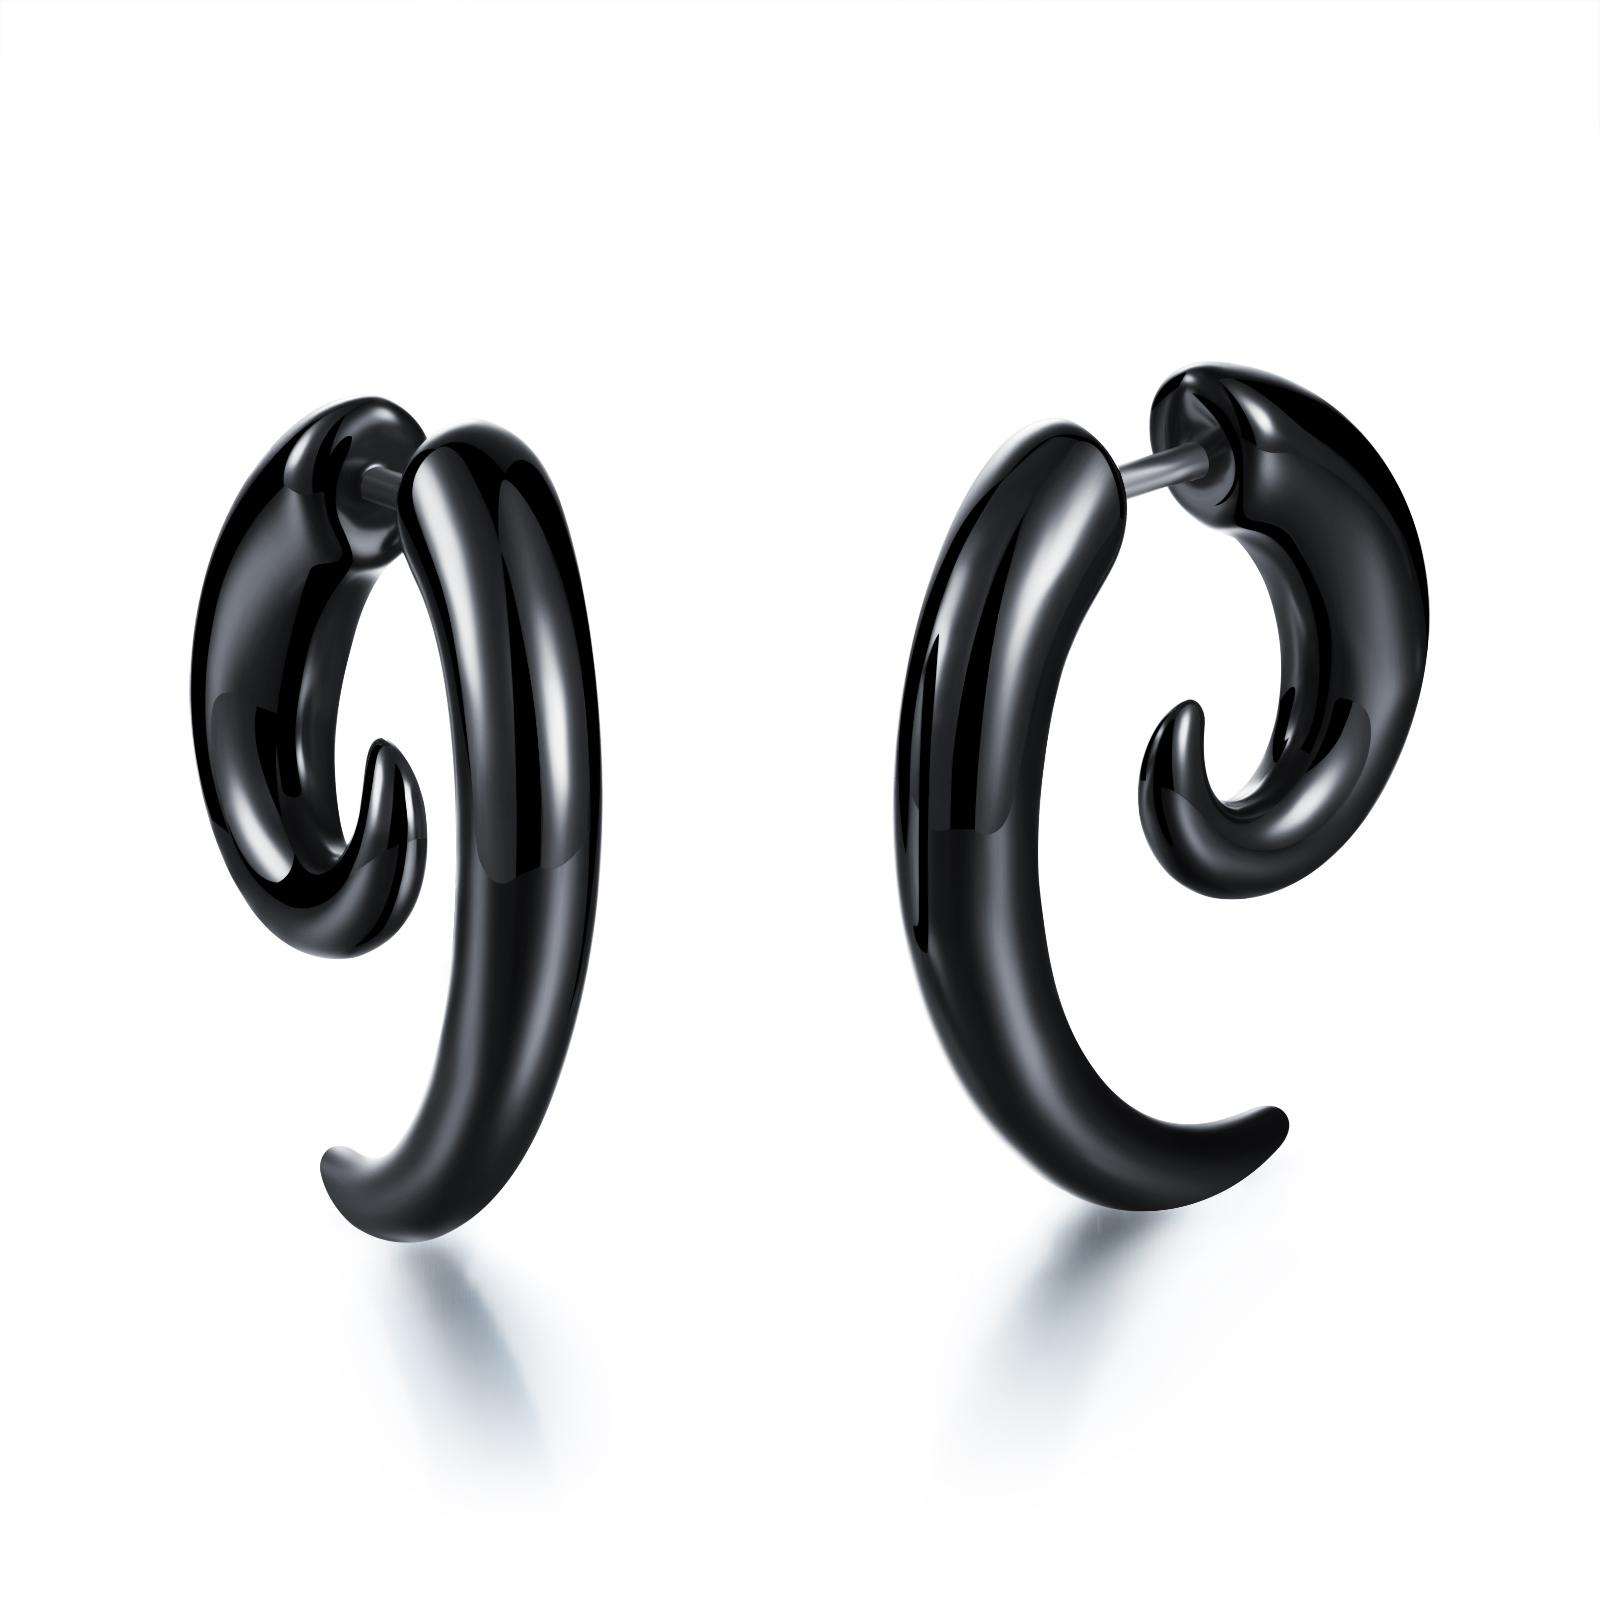 Comfortable Light Weight PVC Spiral Earrings Horn Claw Shaped Studs Cheater Fake Ear Plugs Black